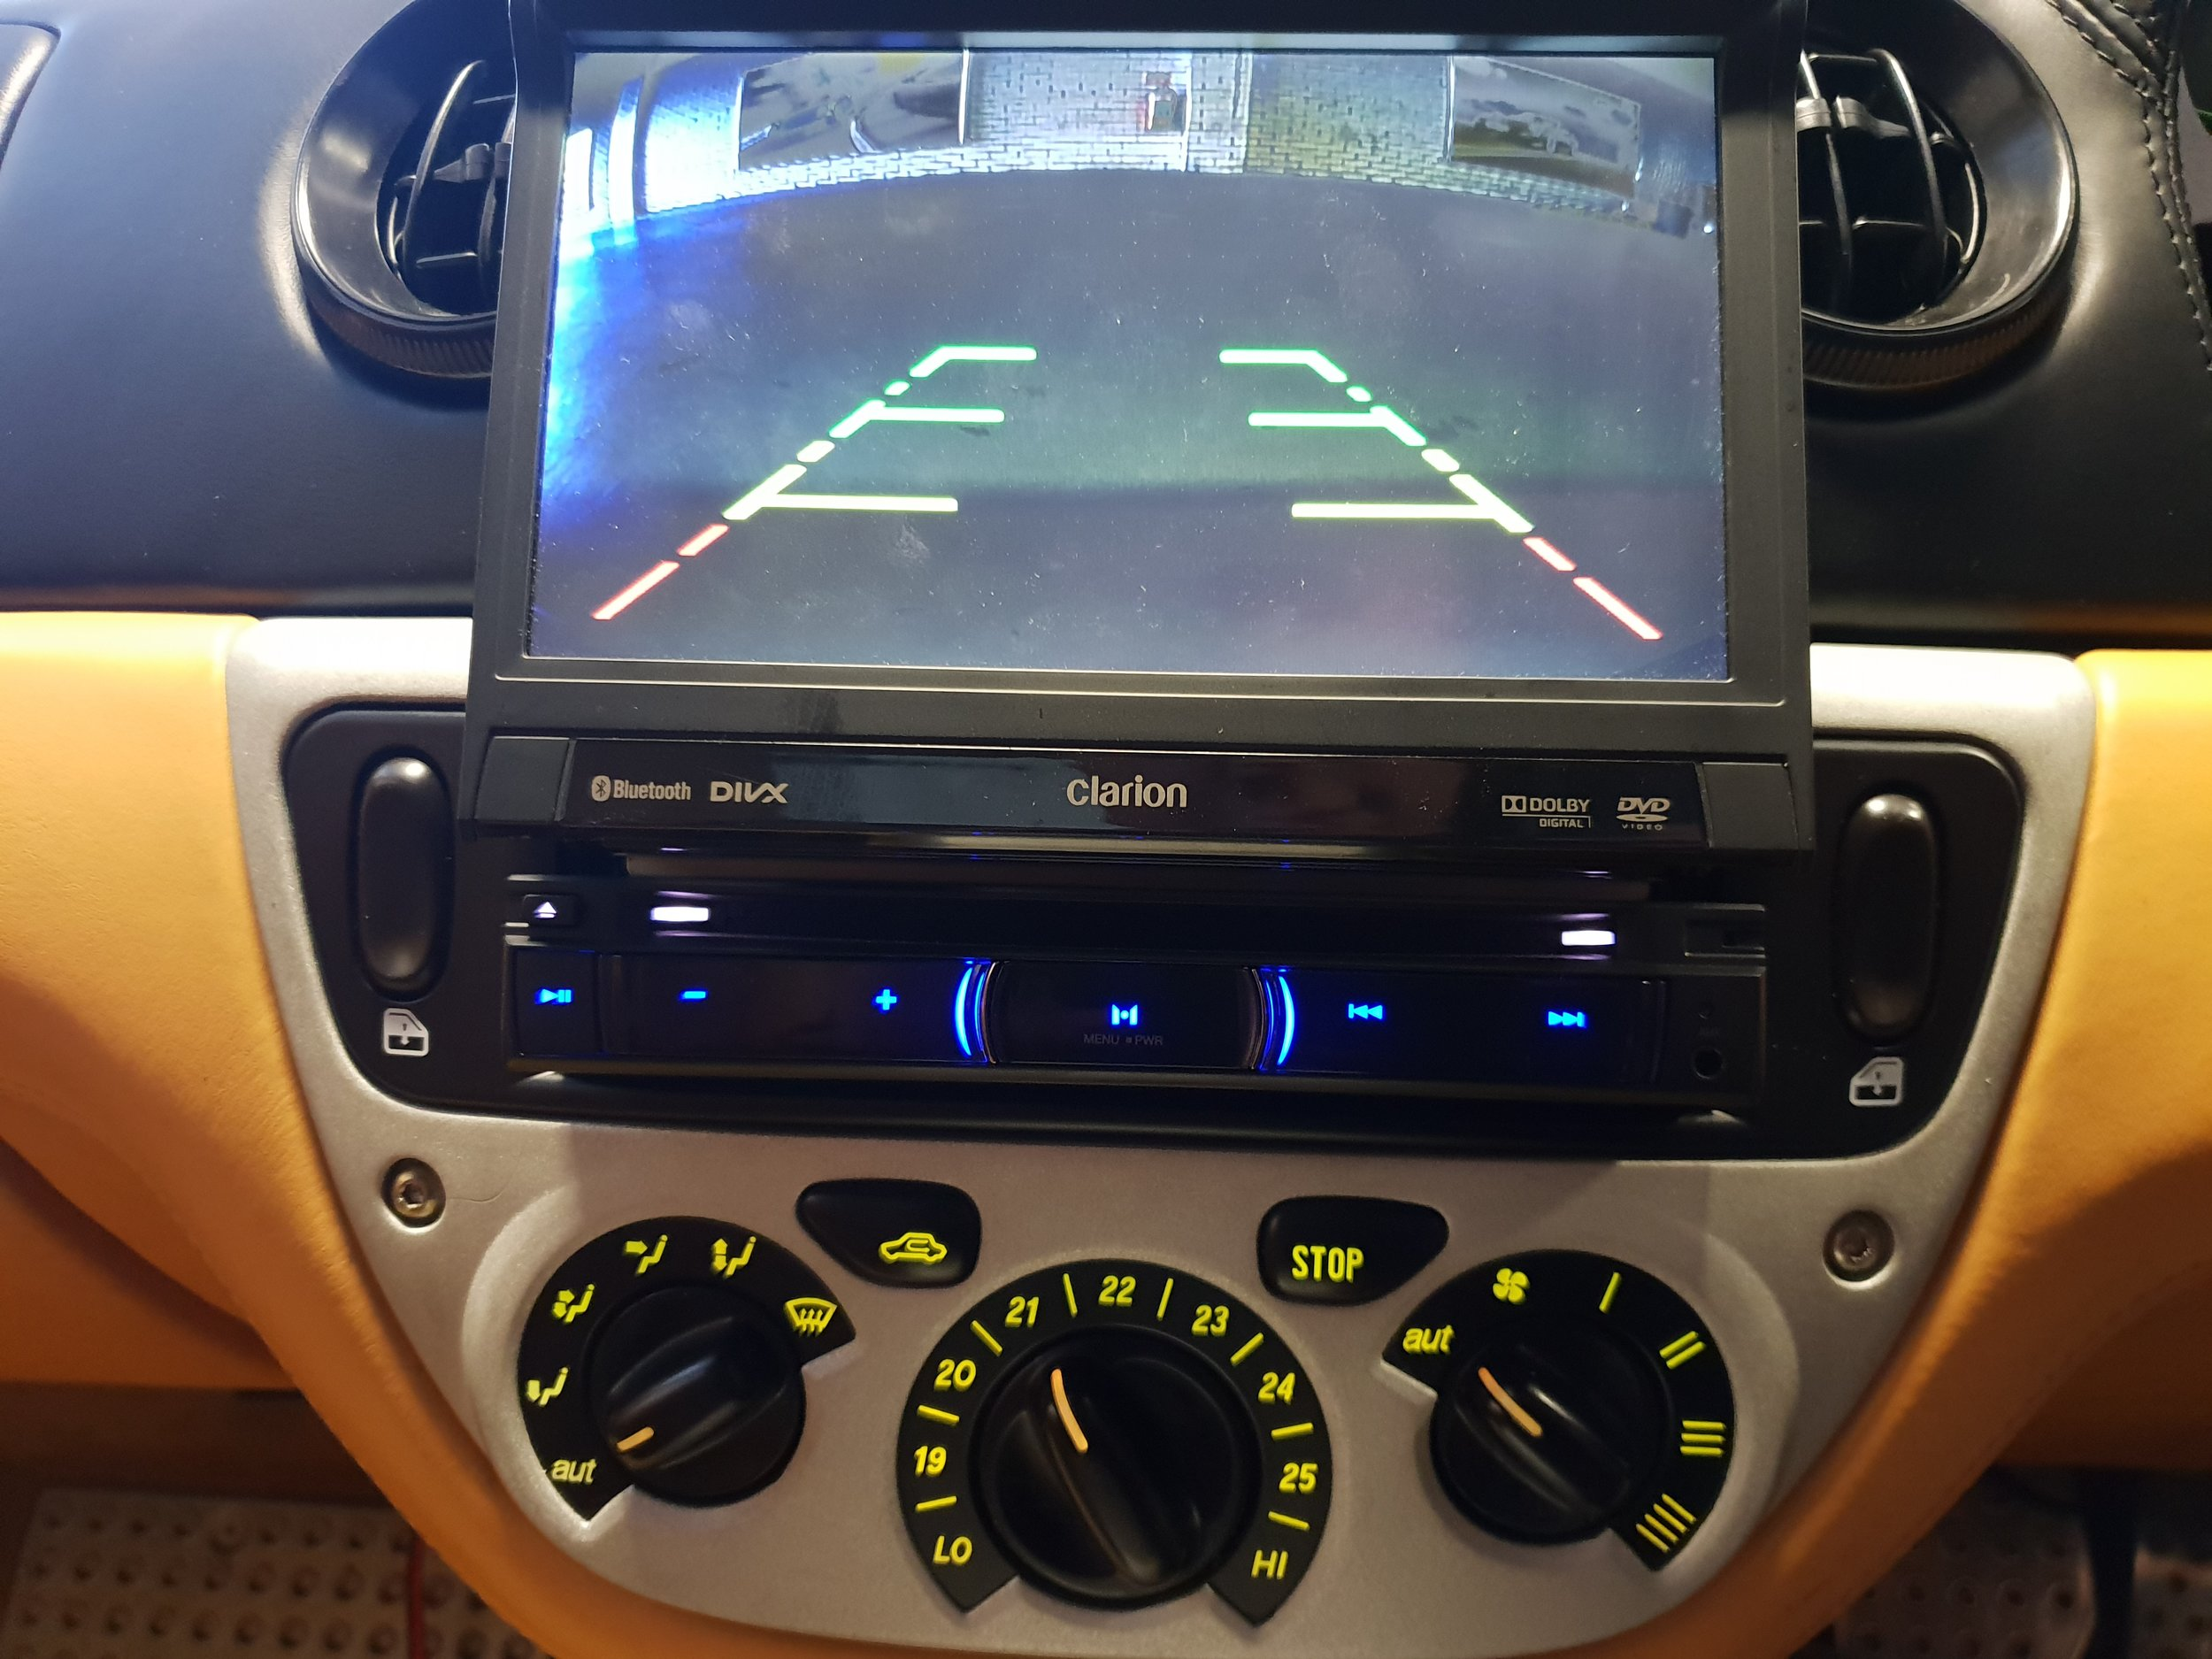 The rear camera displays on the screen automatically when the car is put into reverse